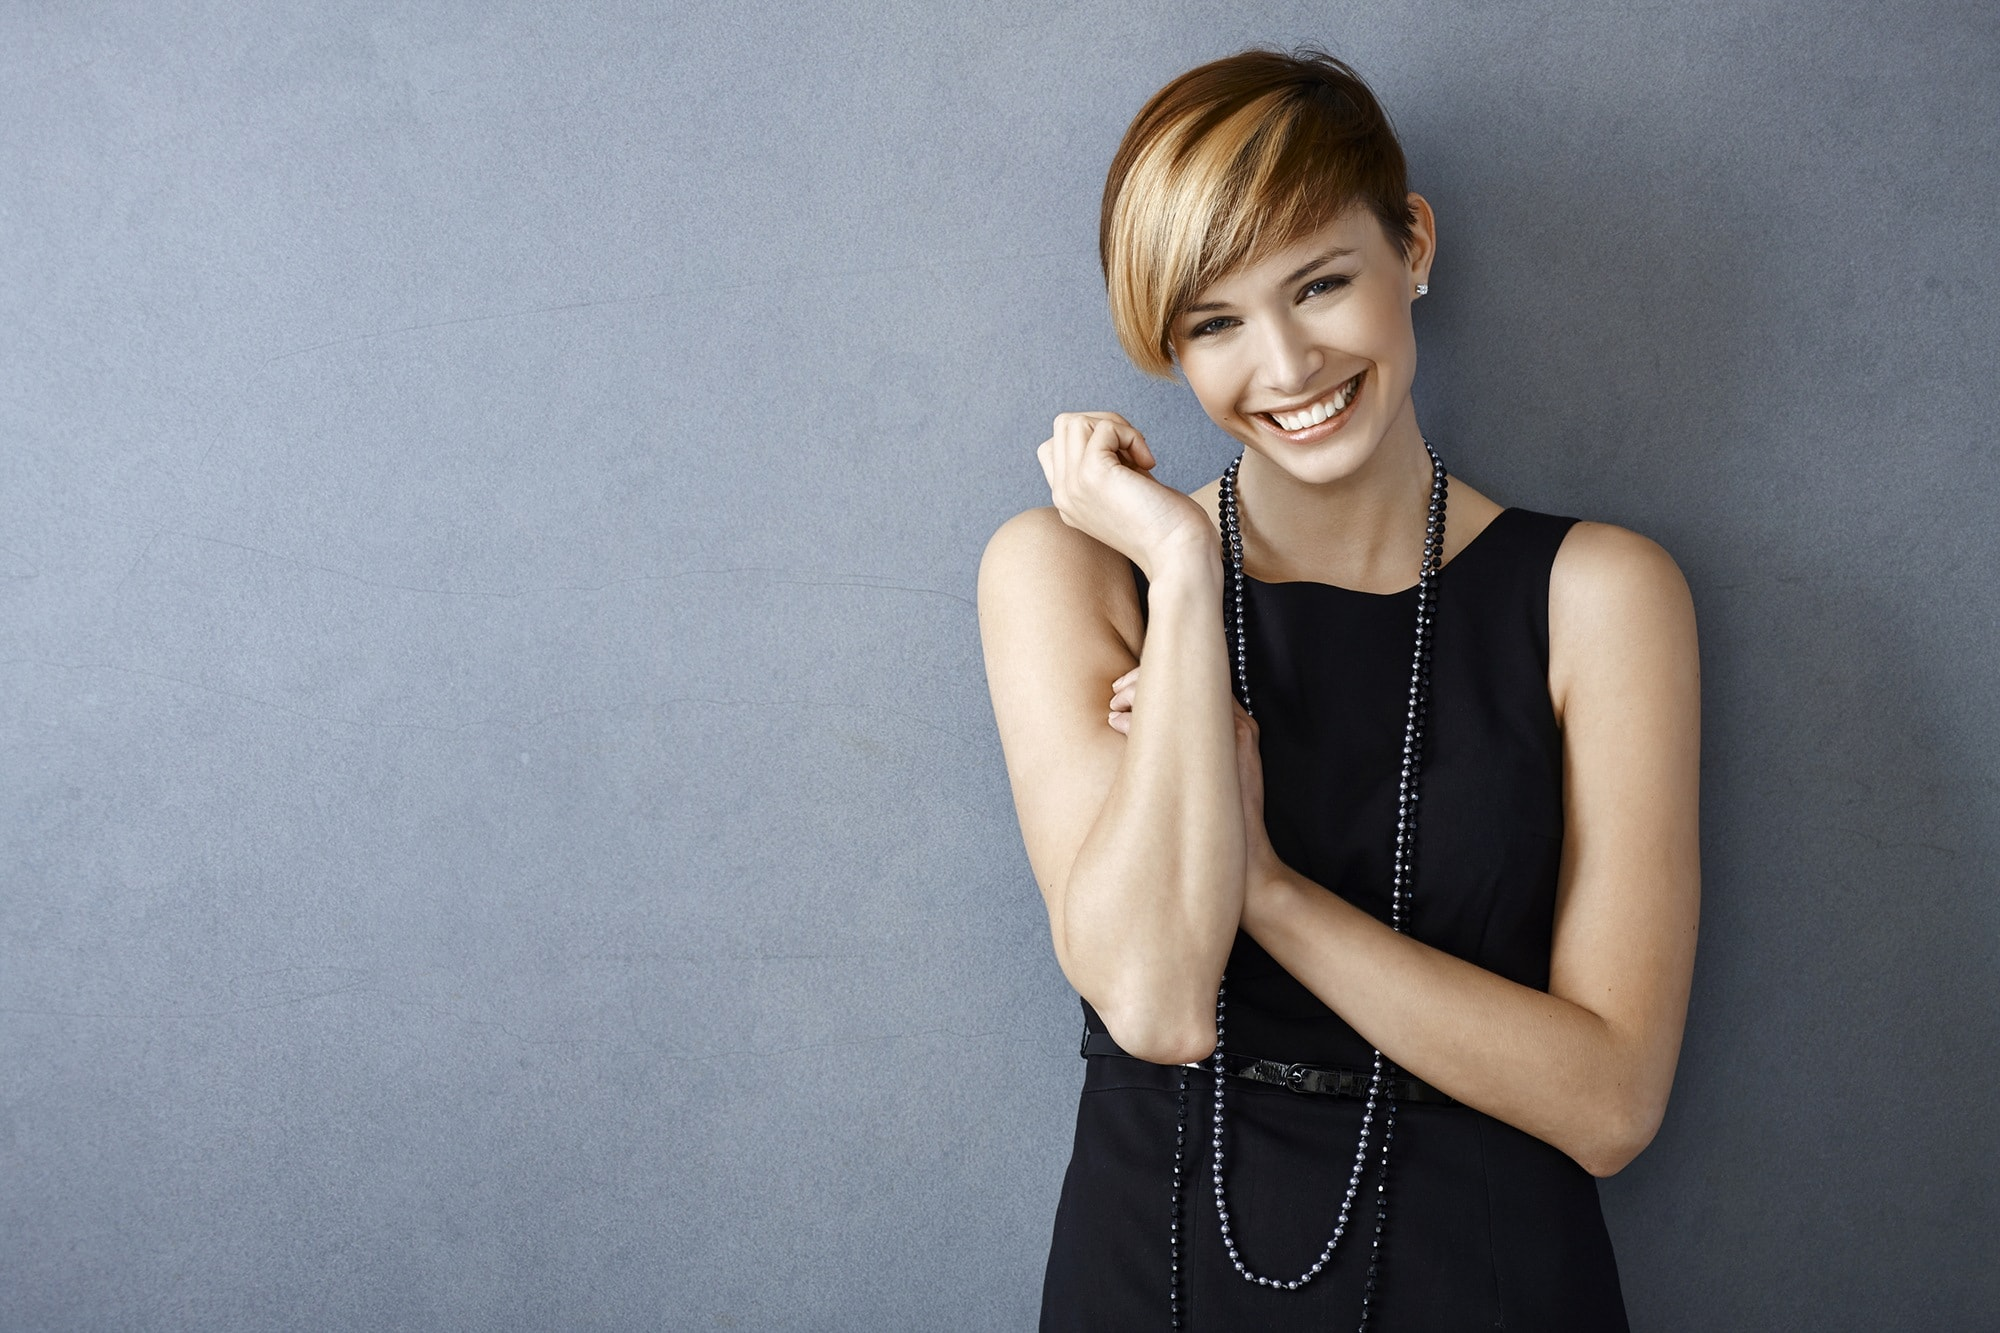 Short hair for round face: Woman with short blonde hair in pixie cut with long bangs